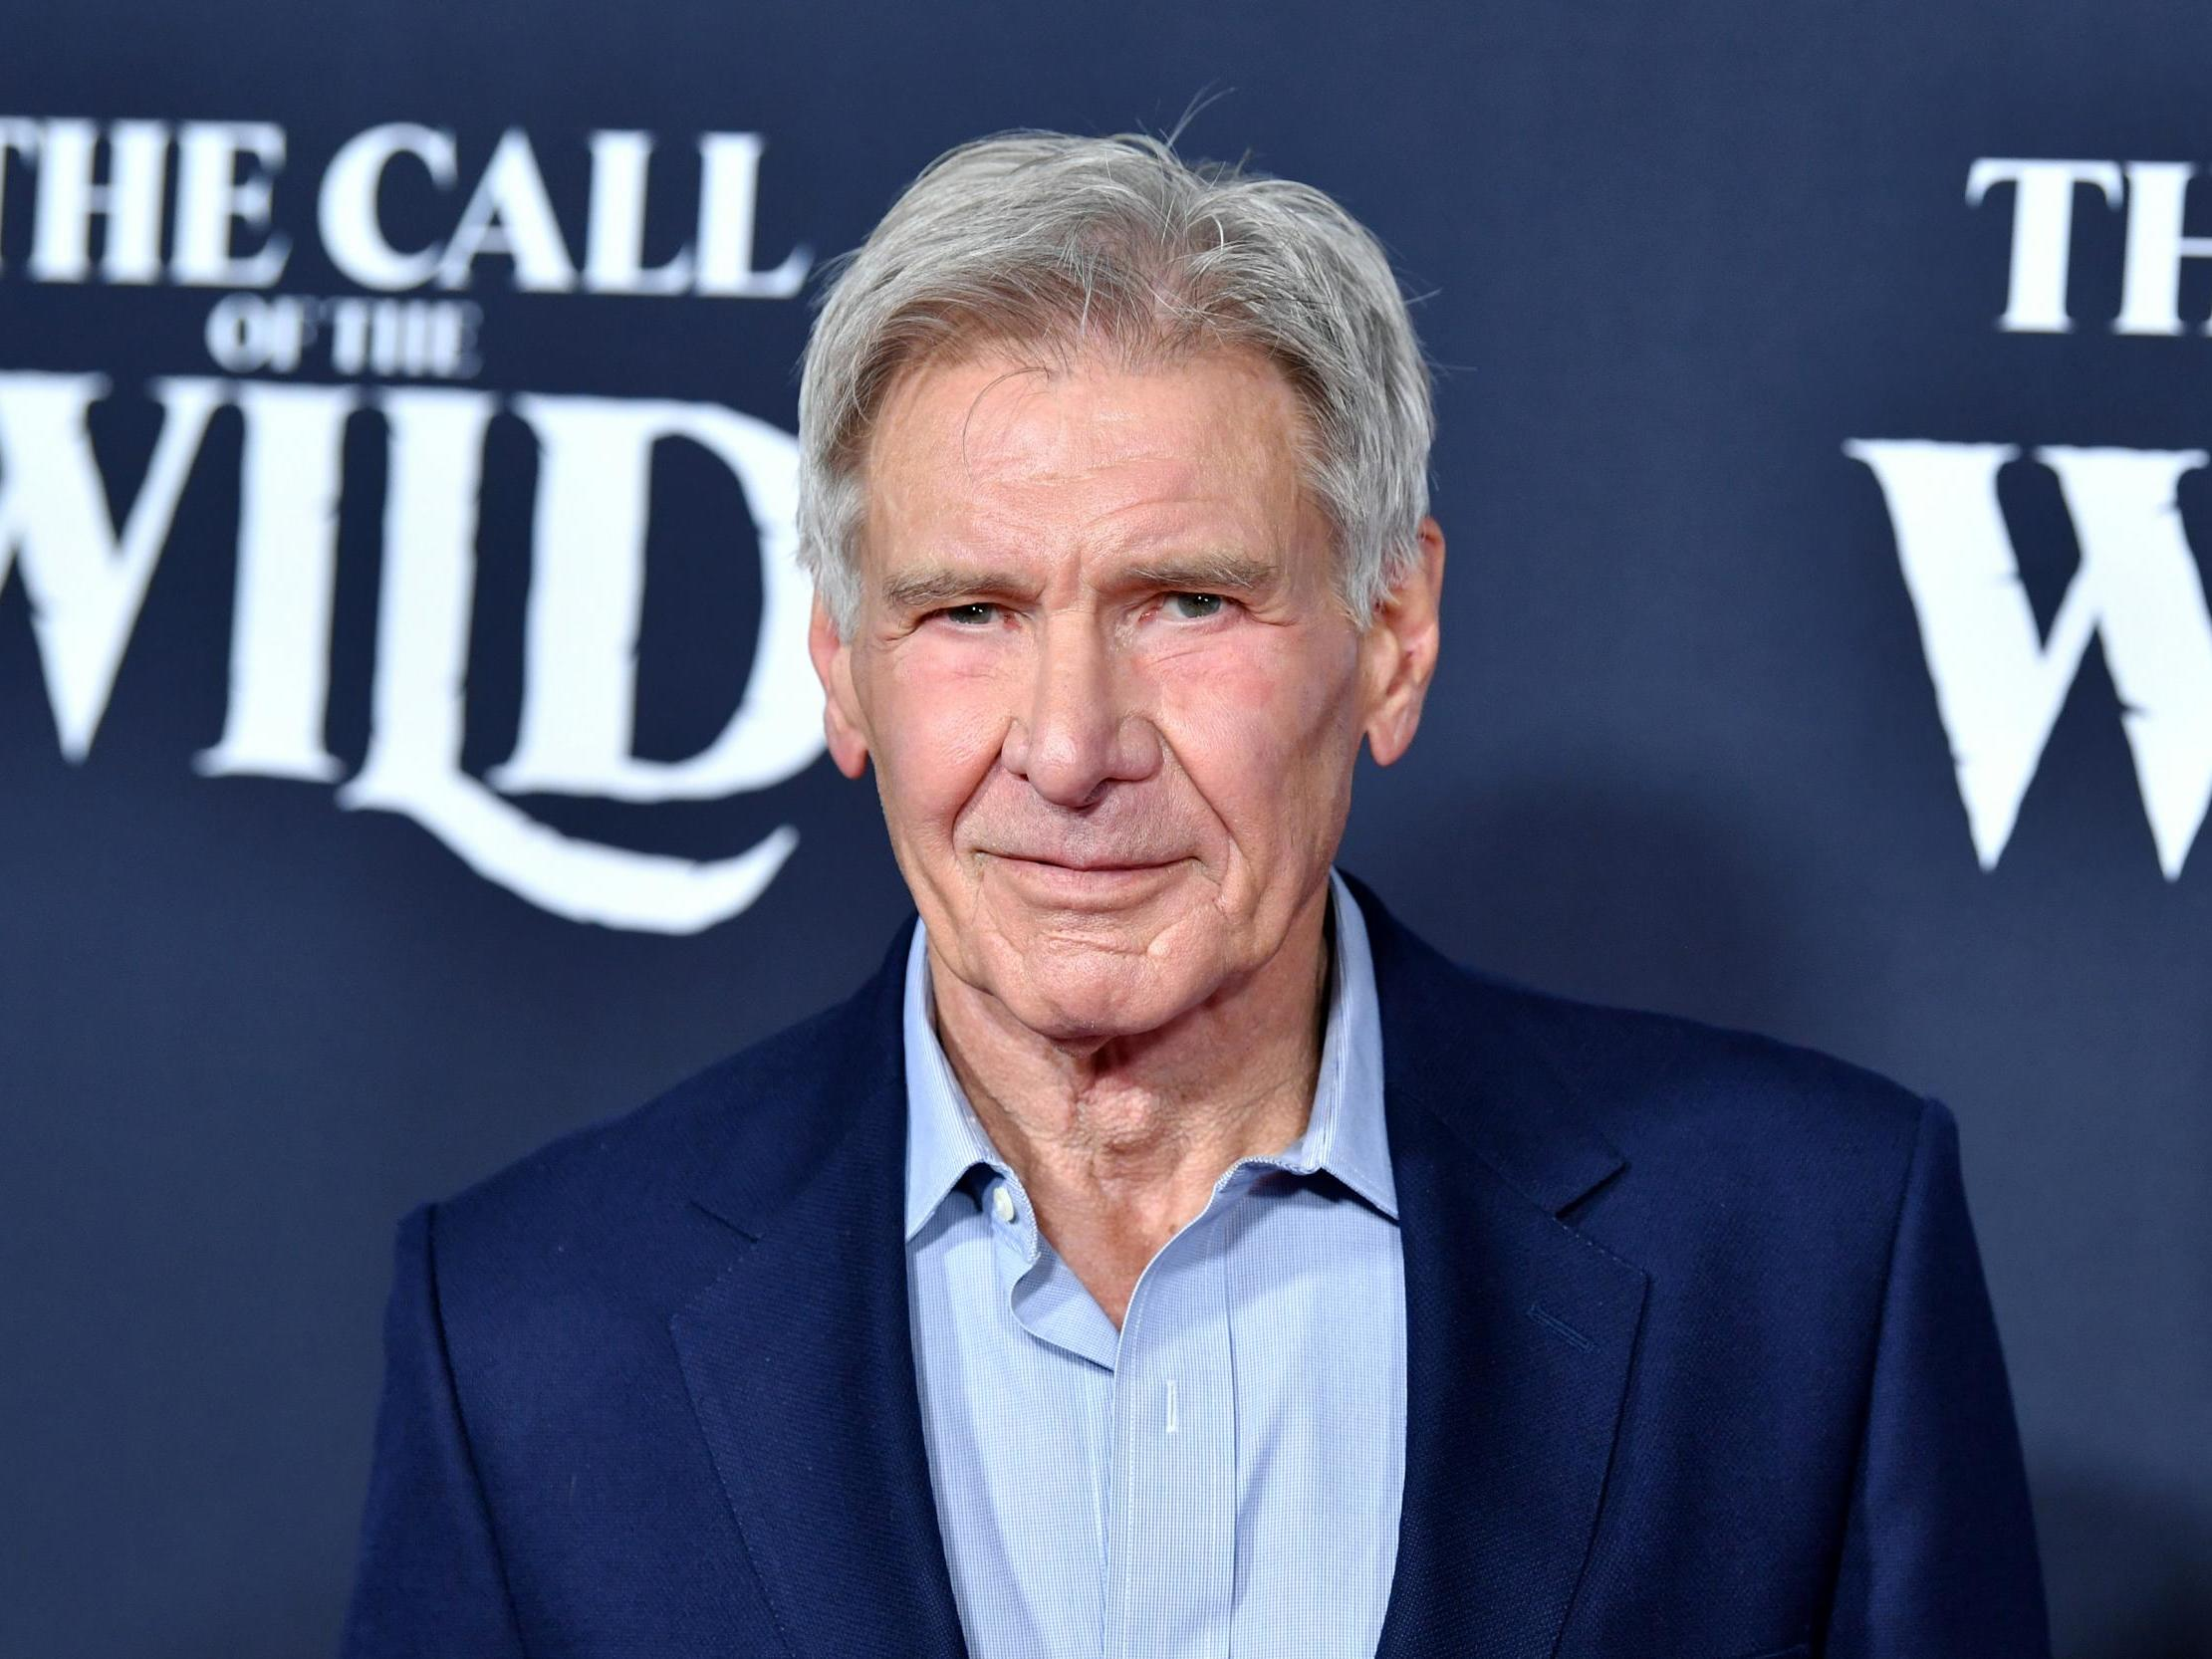 Harrison Ford says he has 'no f***ing idea what a Force ghost is' after Star Wars cameo